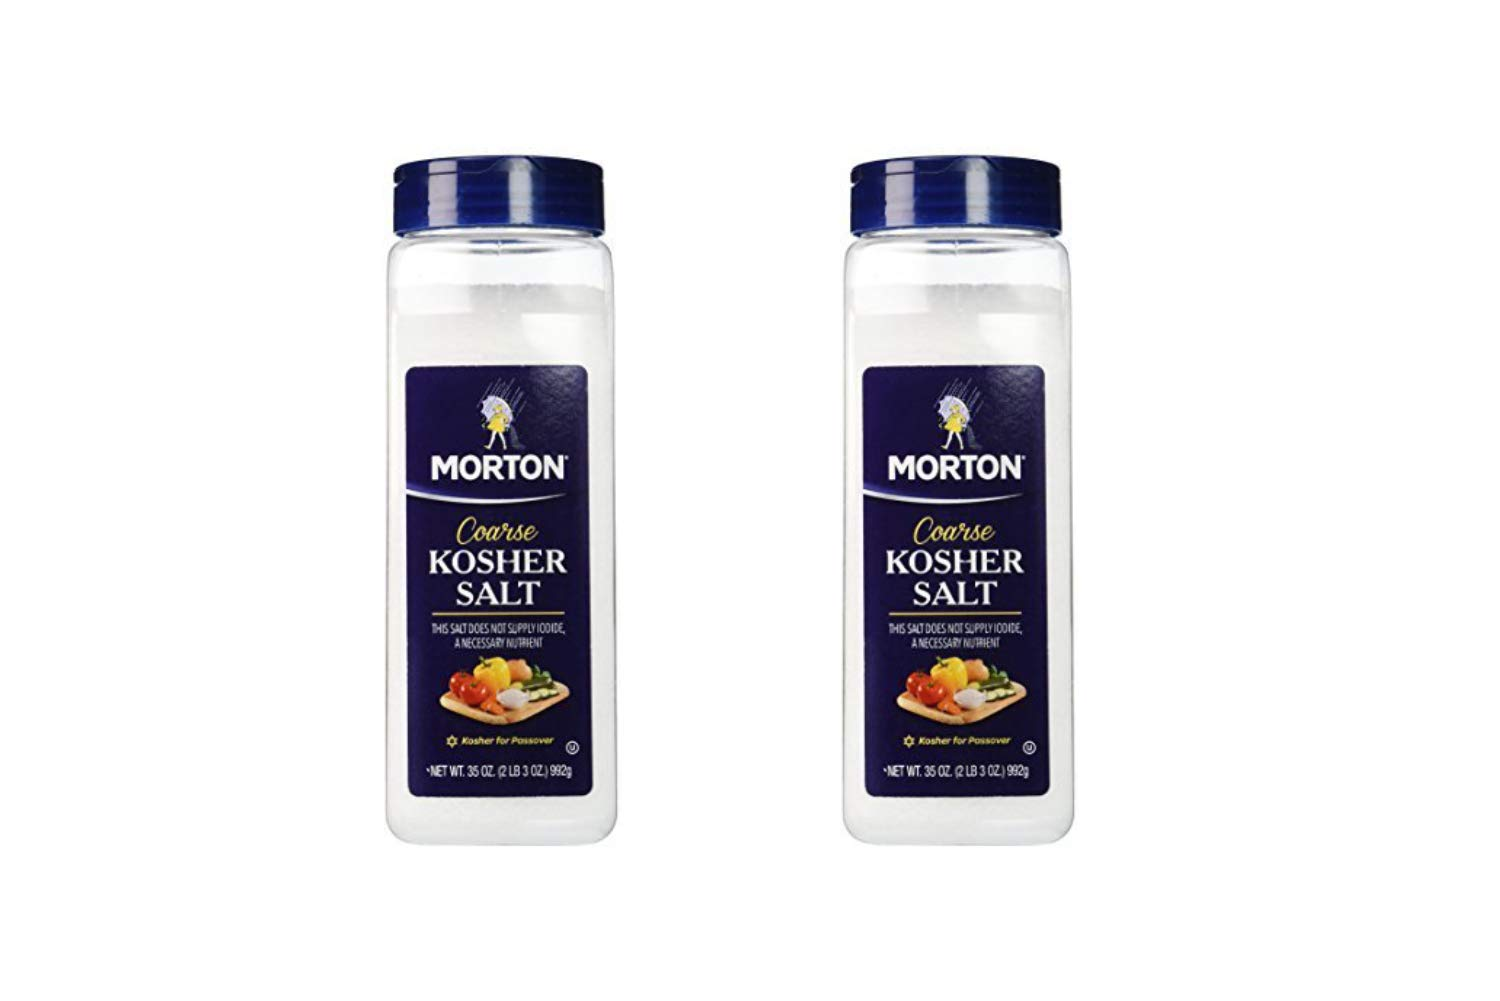 Morton Coarse Kosher Salt 35 oz. by Morton Salt (2 Pack)